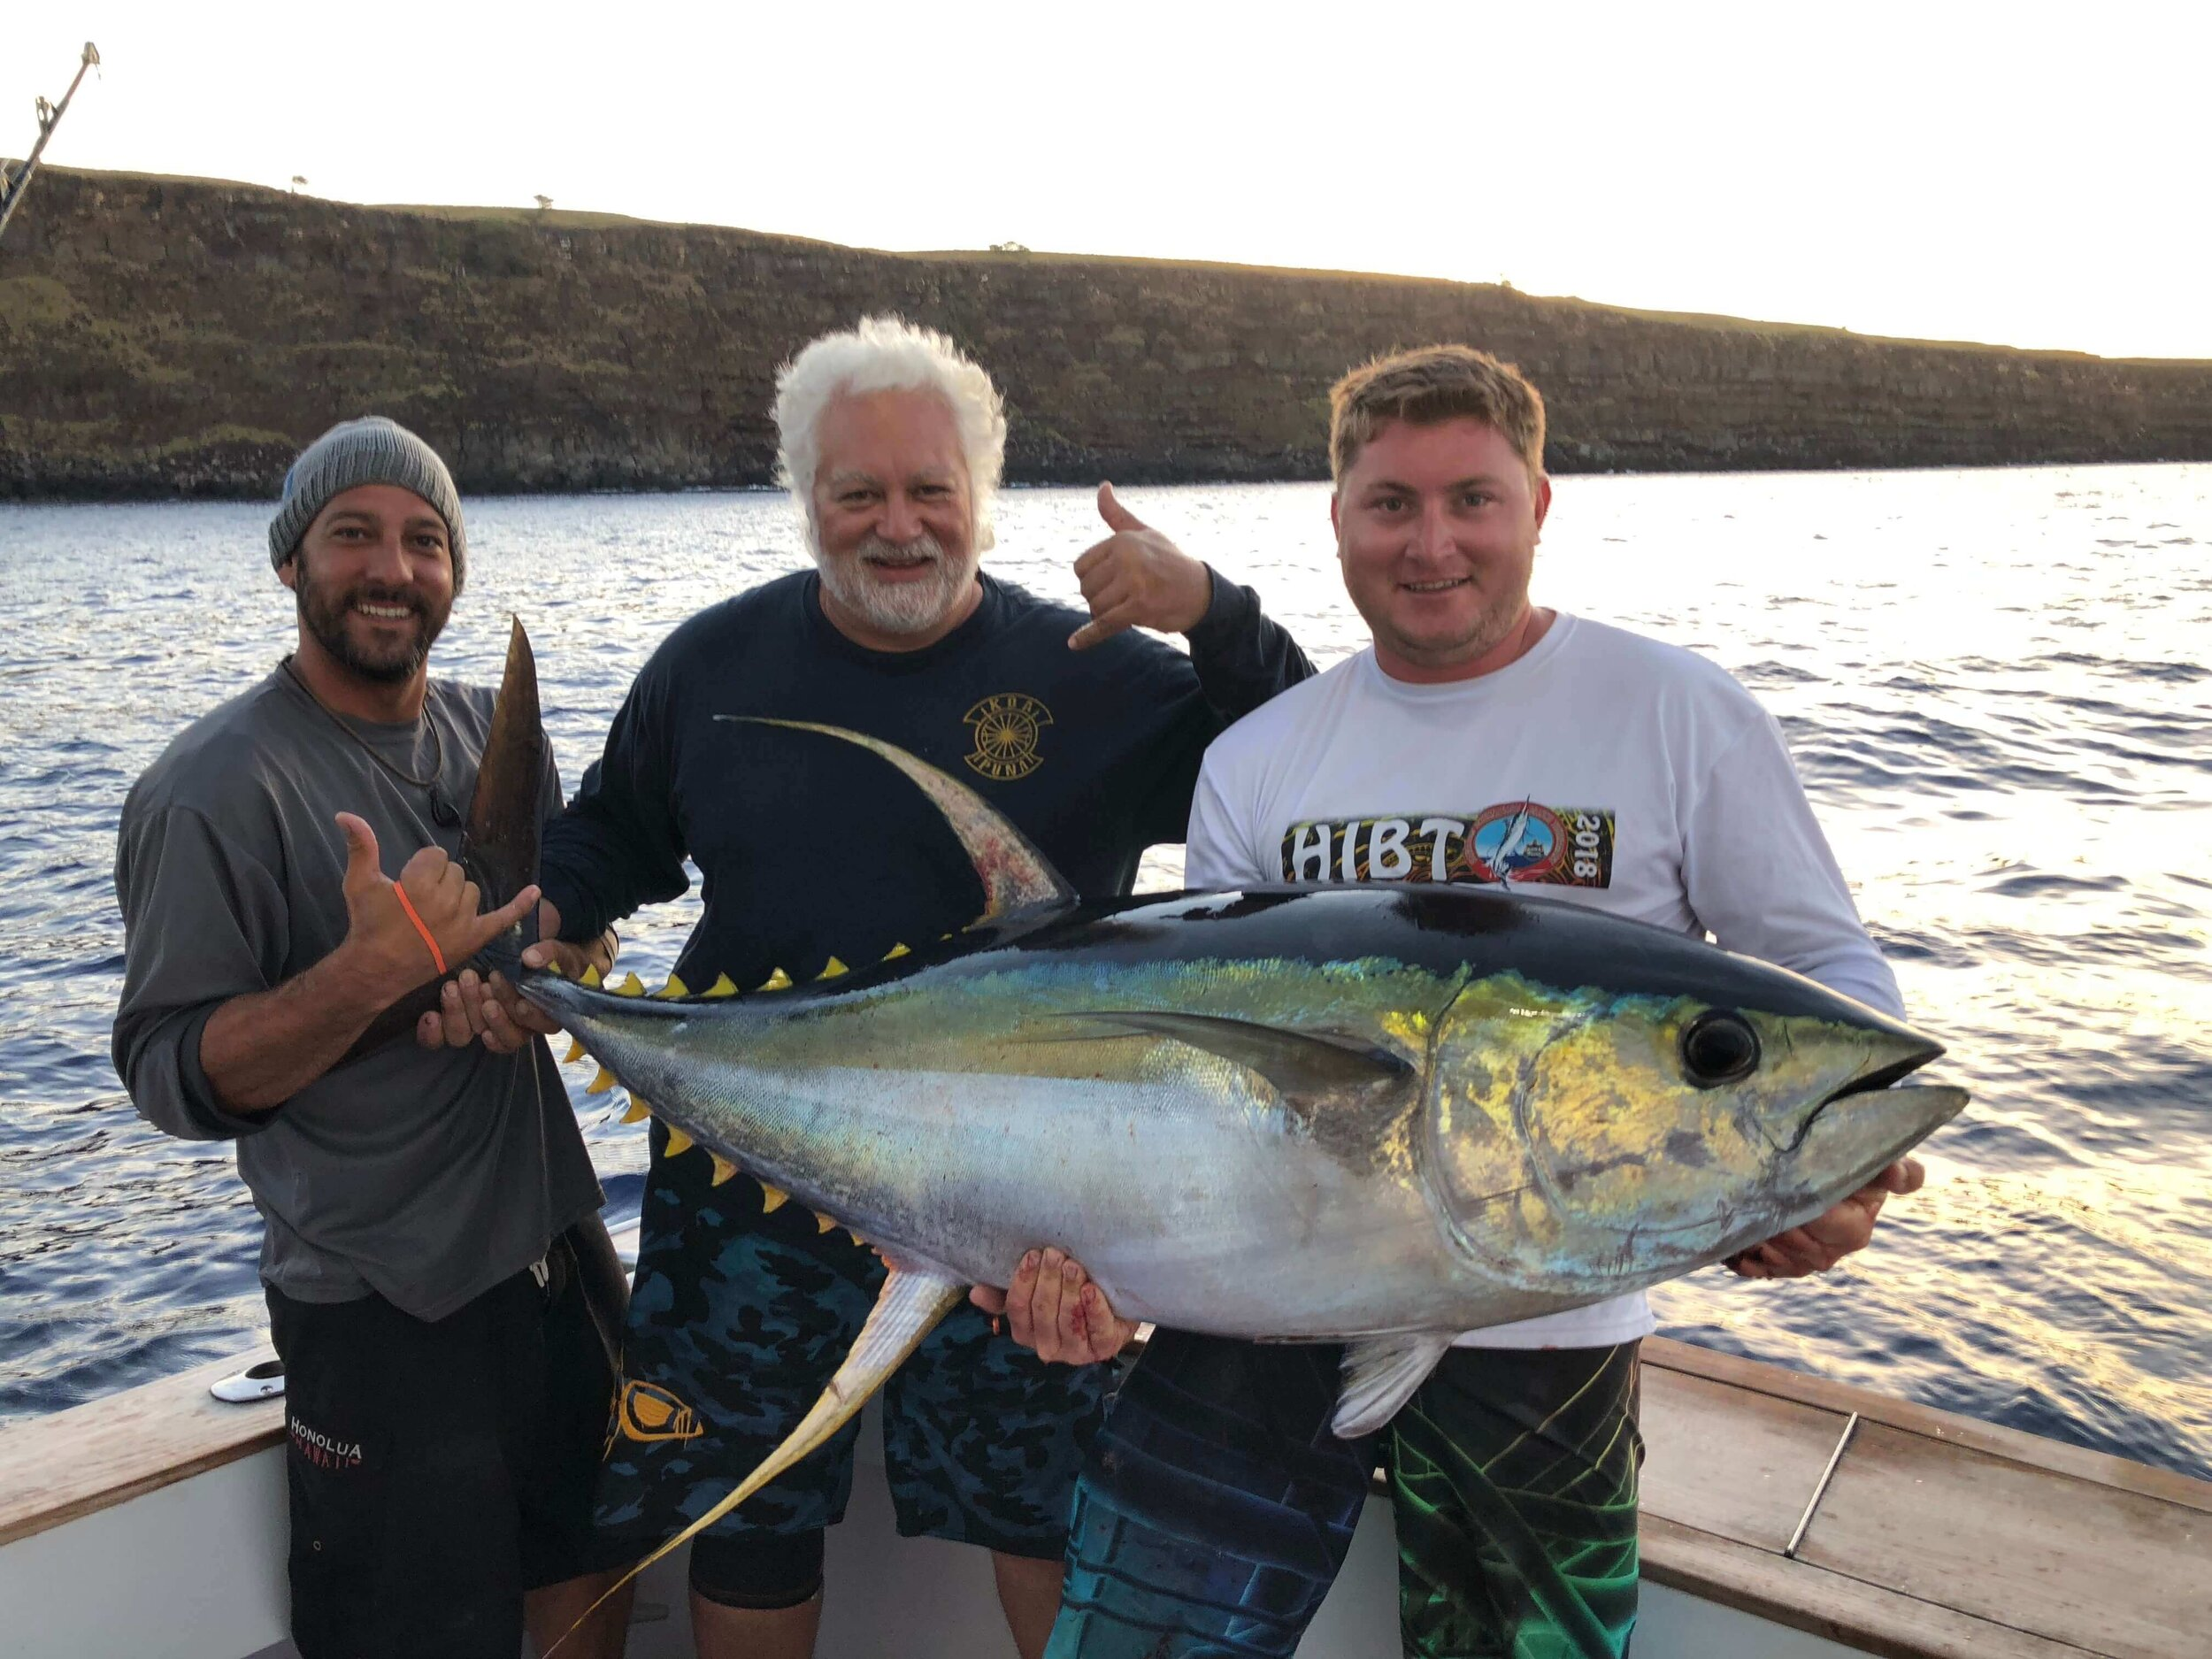 All Day Fishing (10 Hours) - INCLUDES: class 130 & 50 class fishing equipment, light snacks, water, and ice.Our All Day Fishing Charters are for the serious angler(s) looking for the best chance to catch THE fish of their lifetime.Learn more